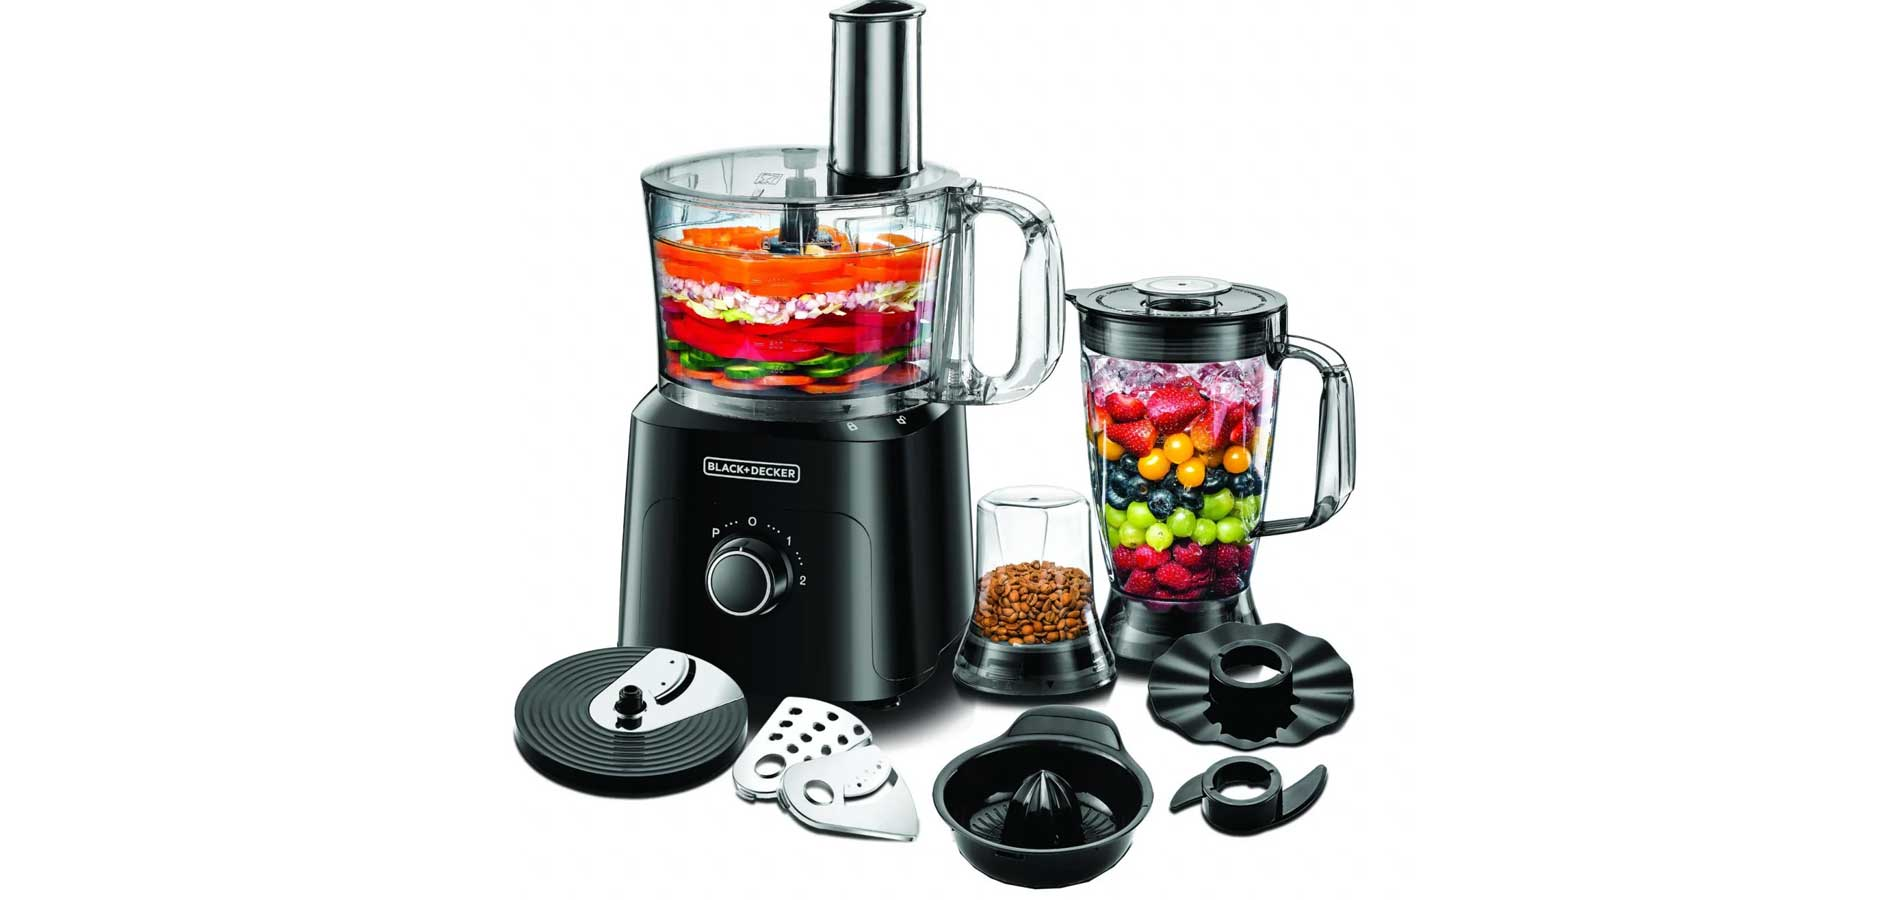 Best Black Friday Food Processor Deals